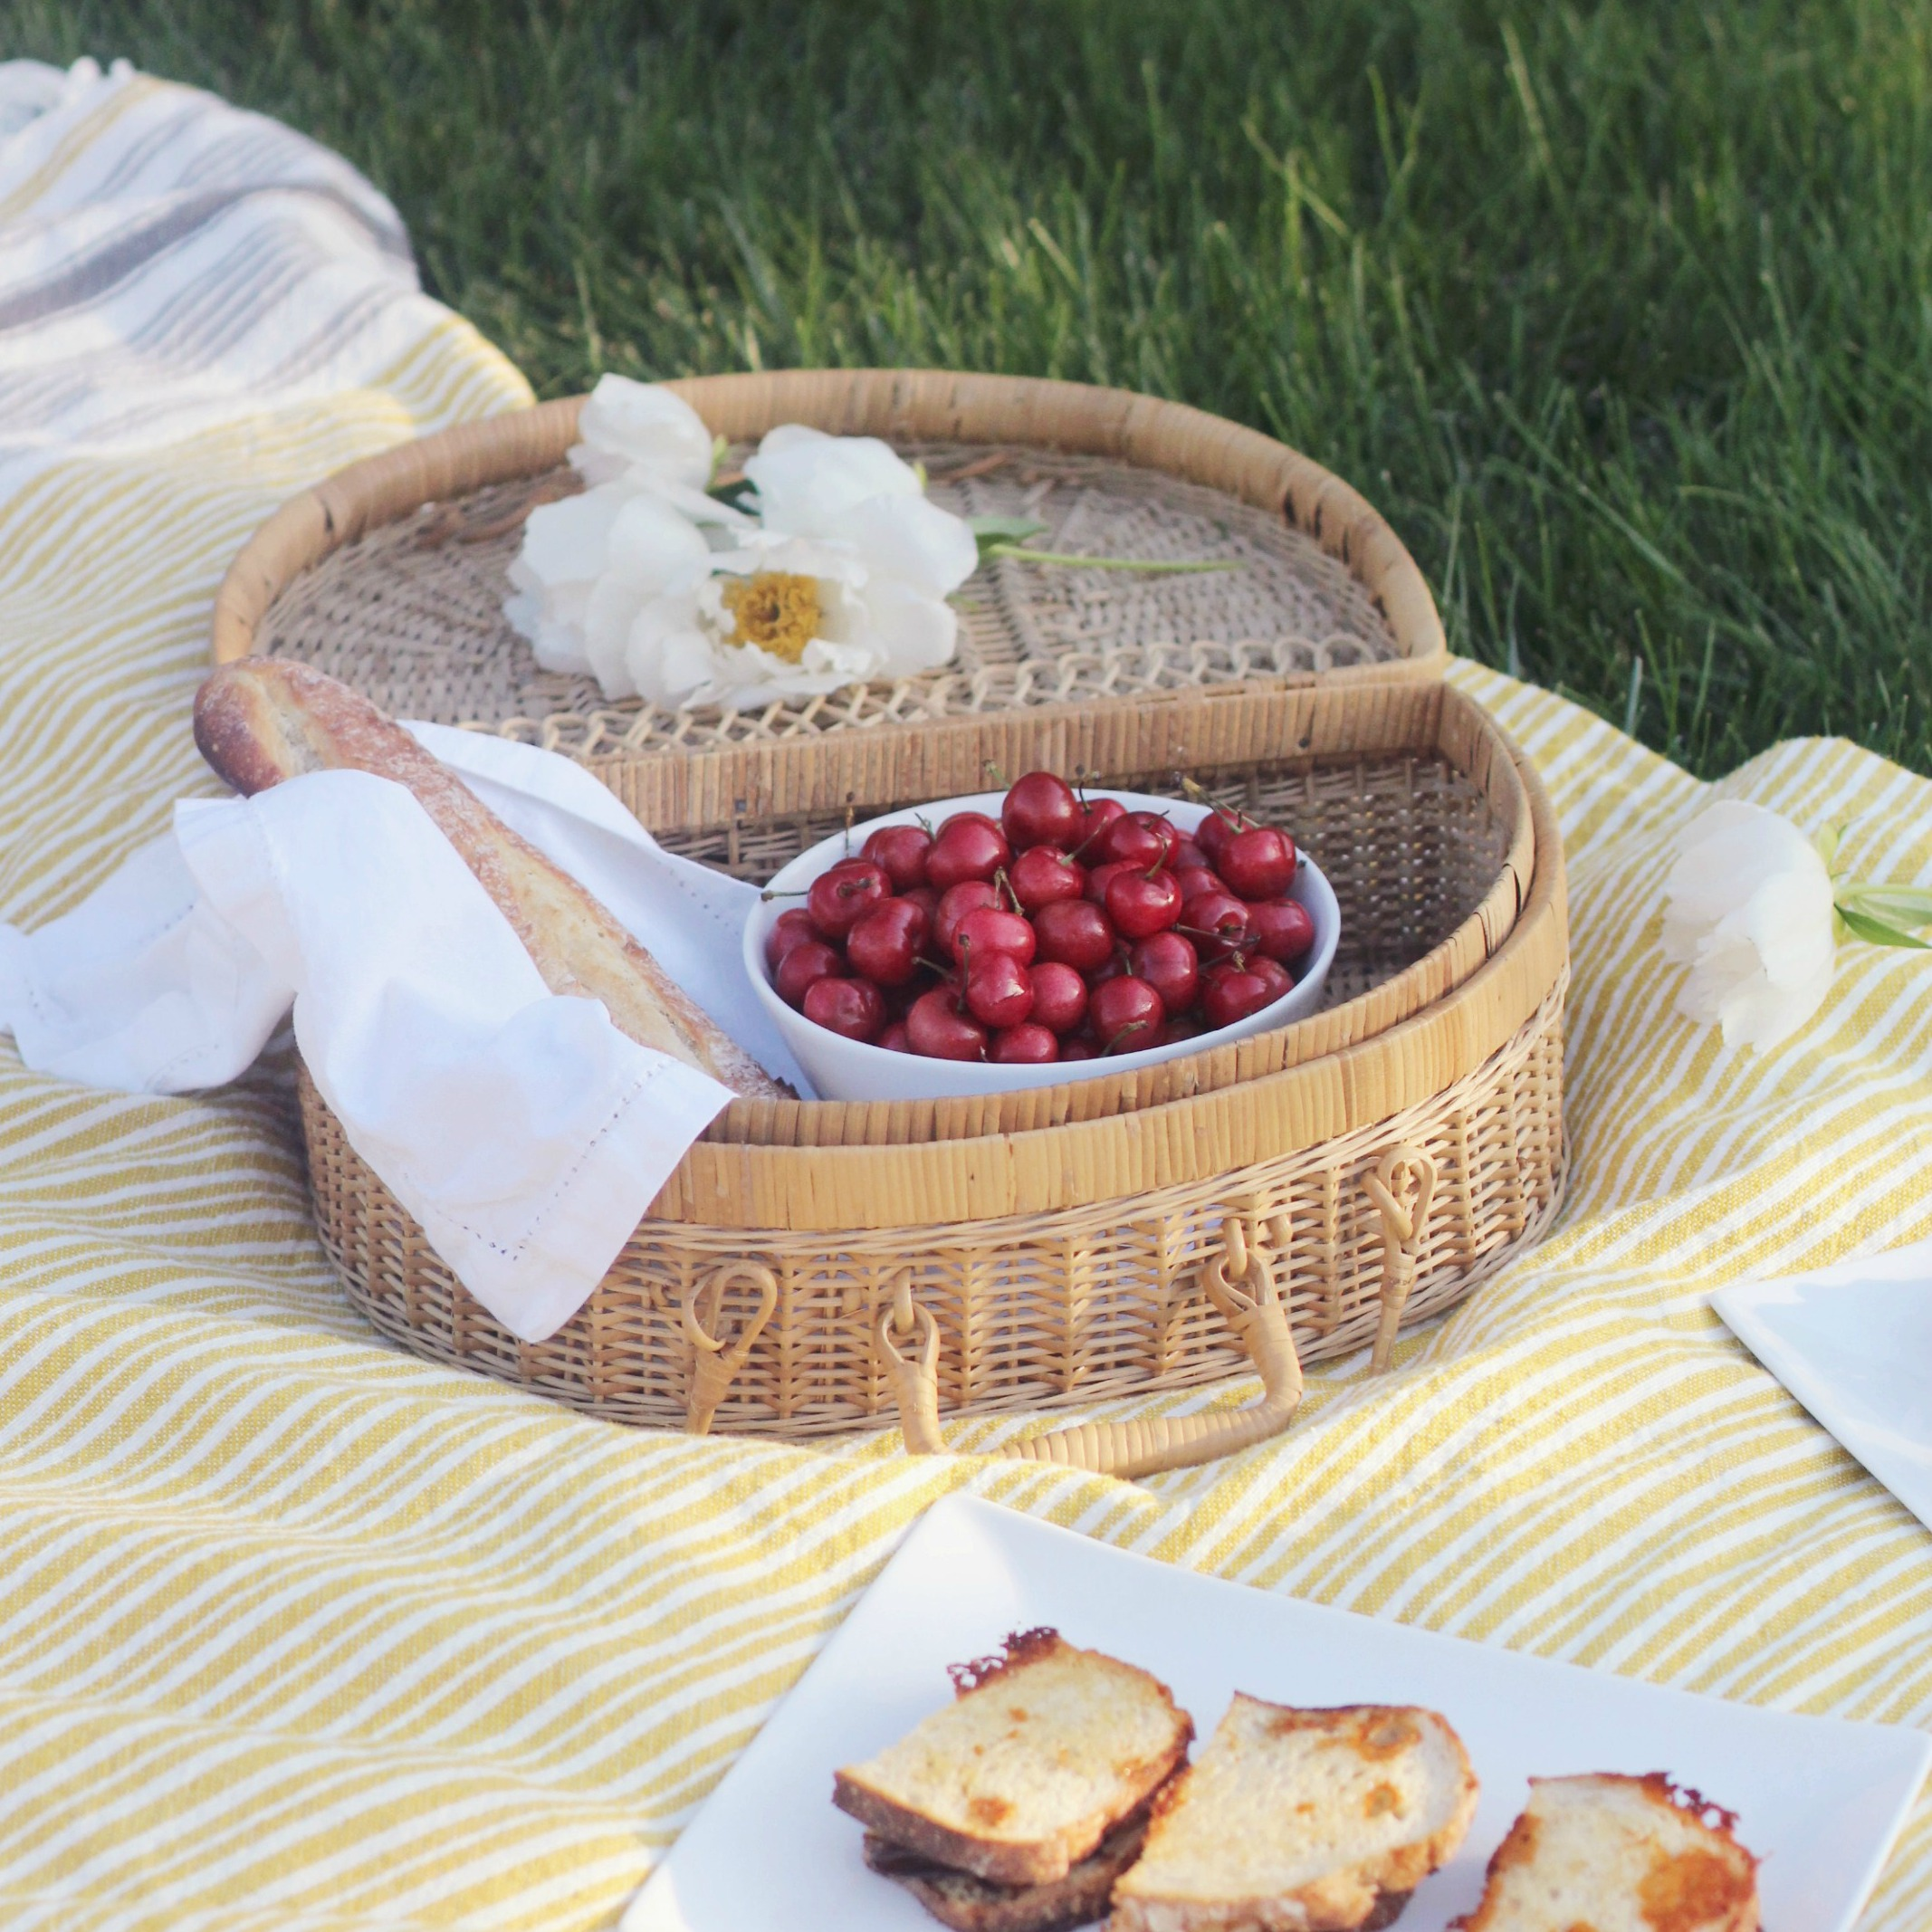 Vintage Picnic Basket with Cherries